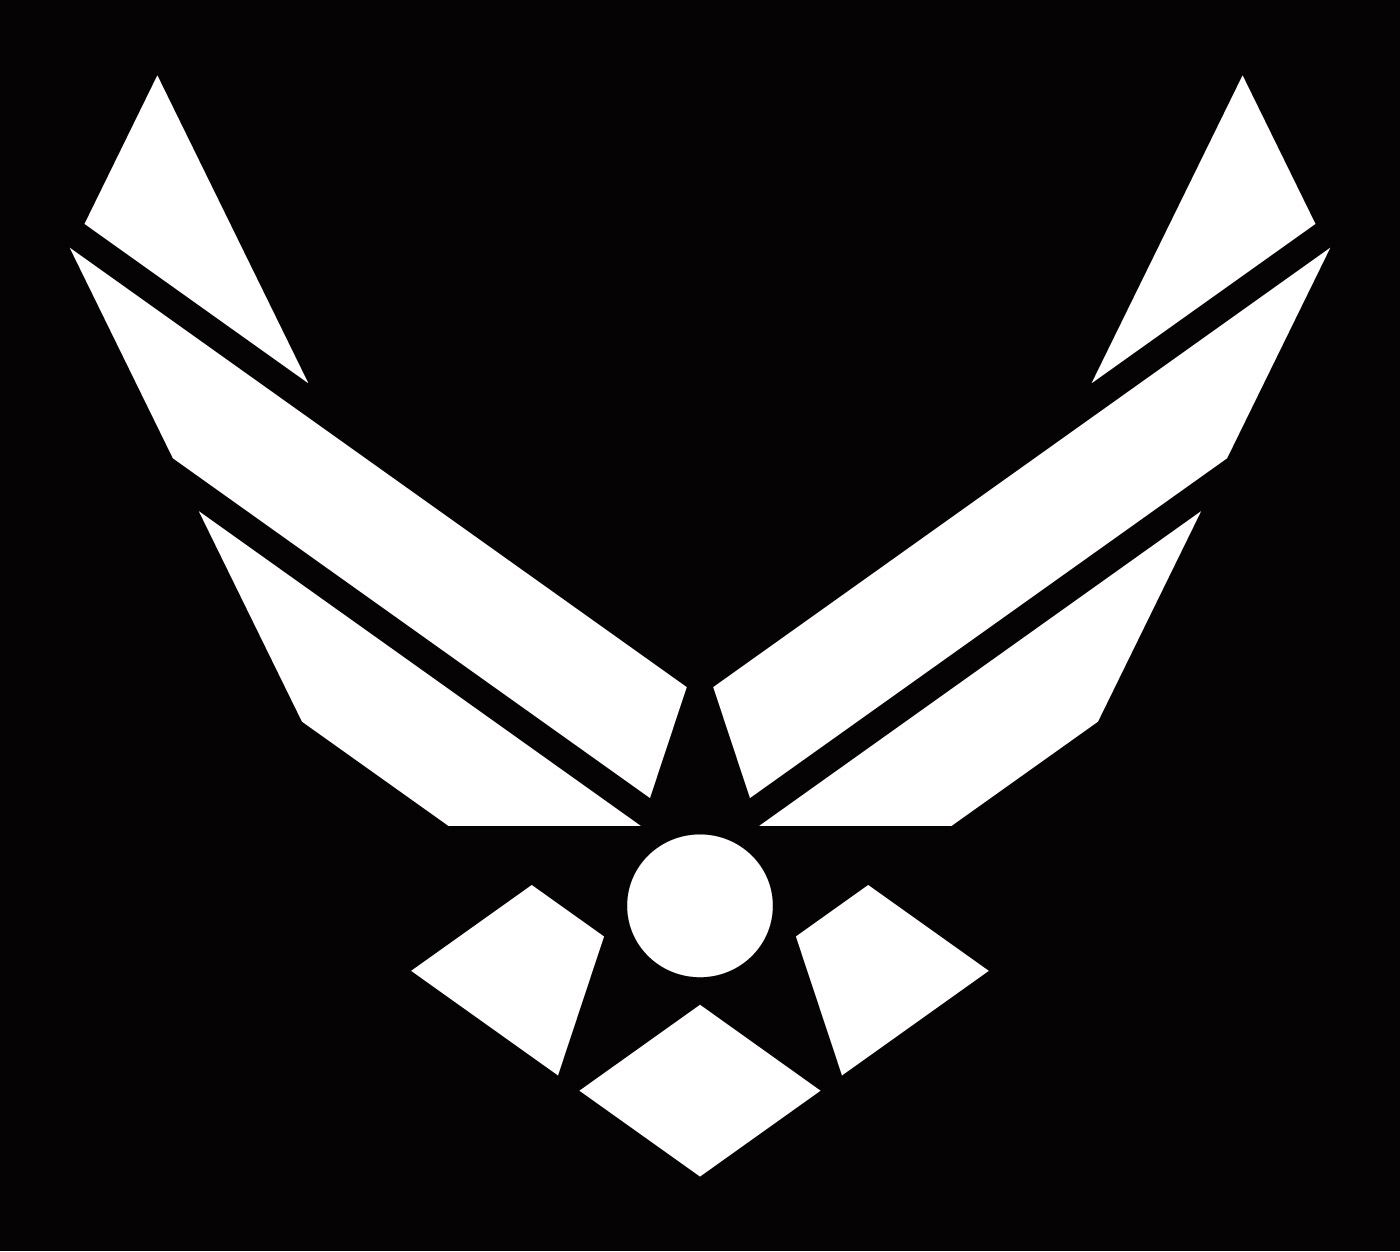 america flag with eagle and air force logo.